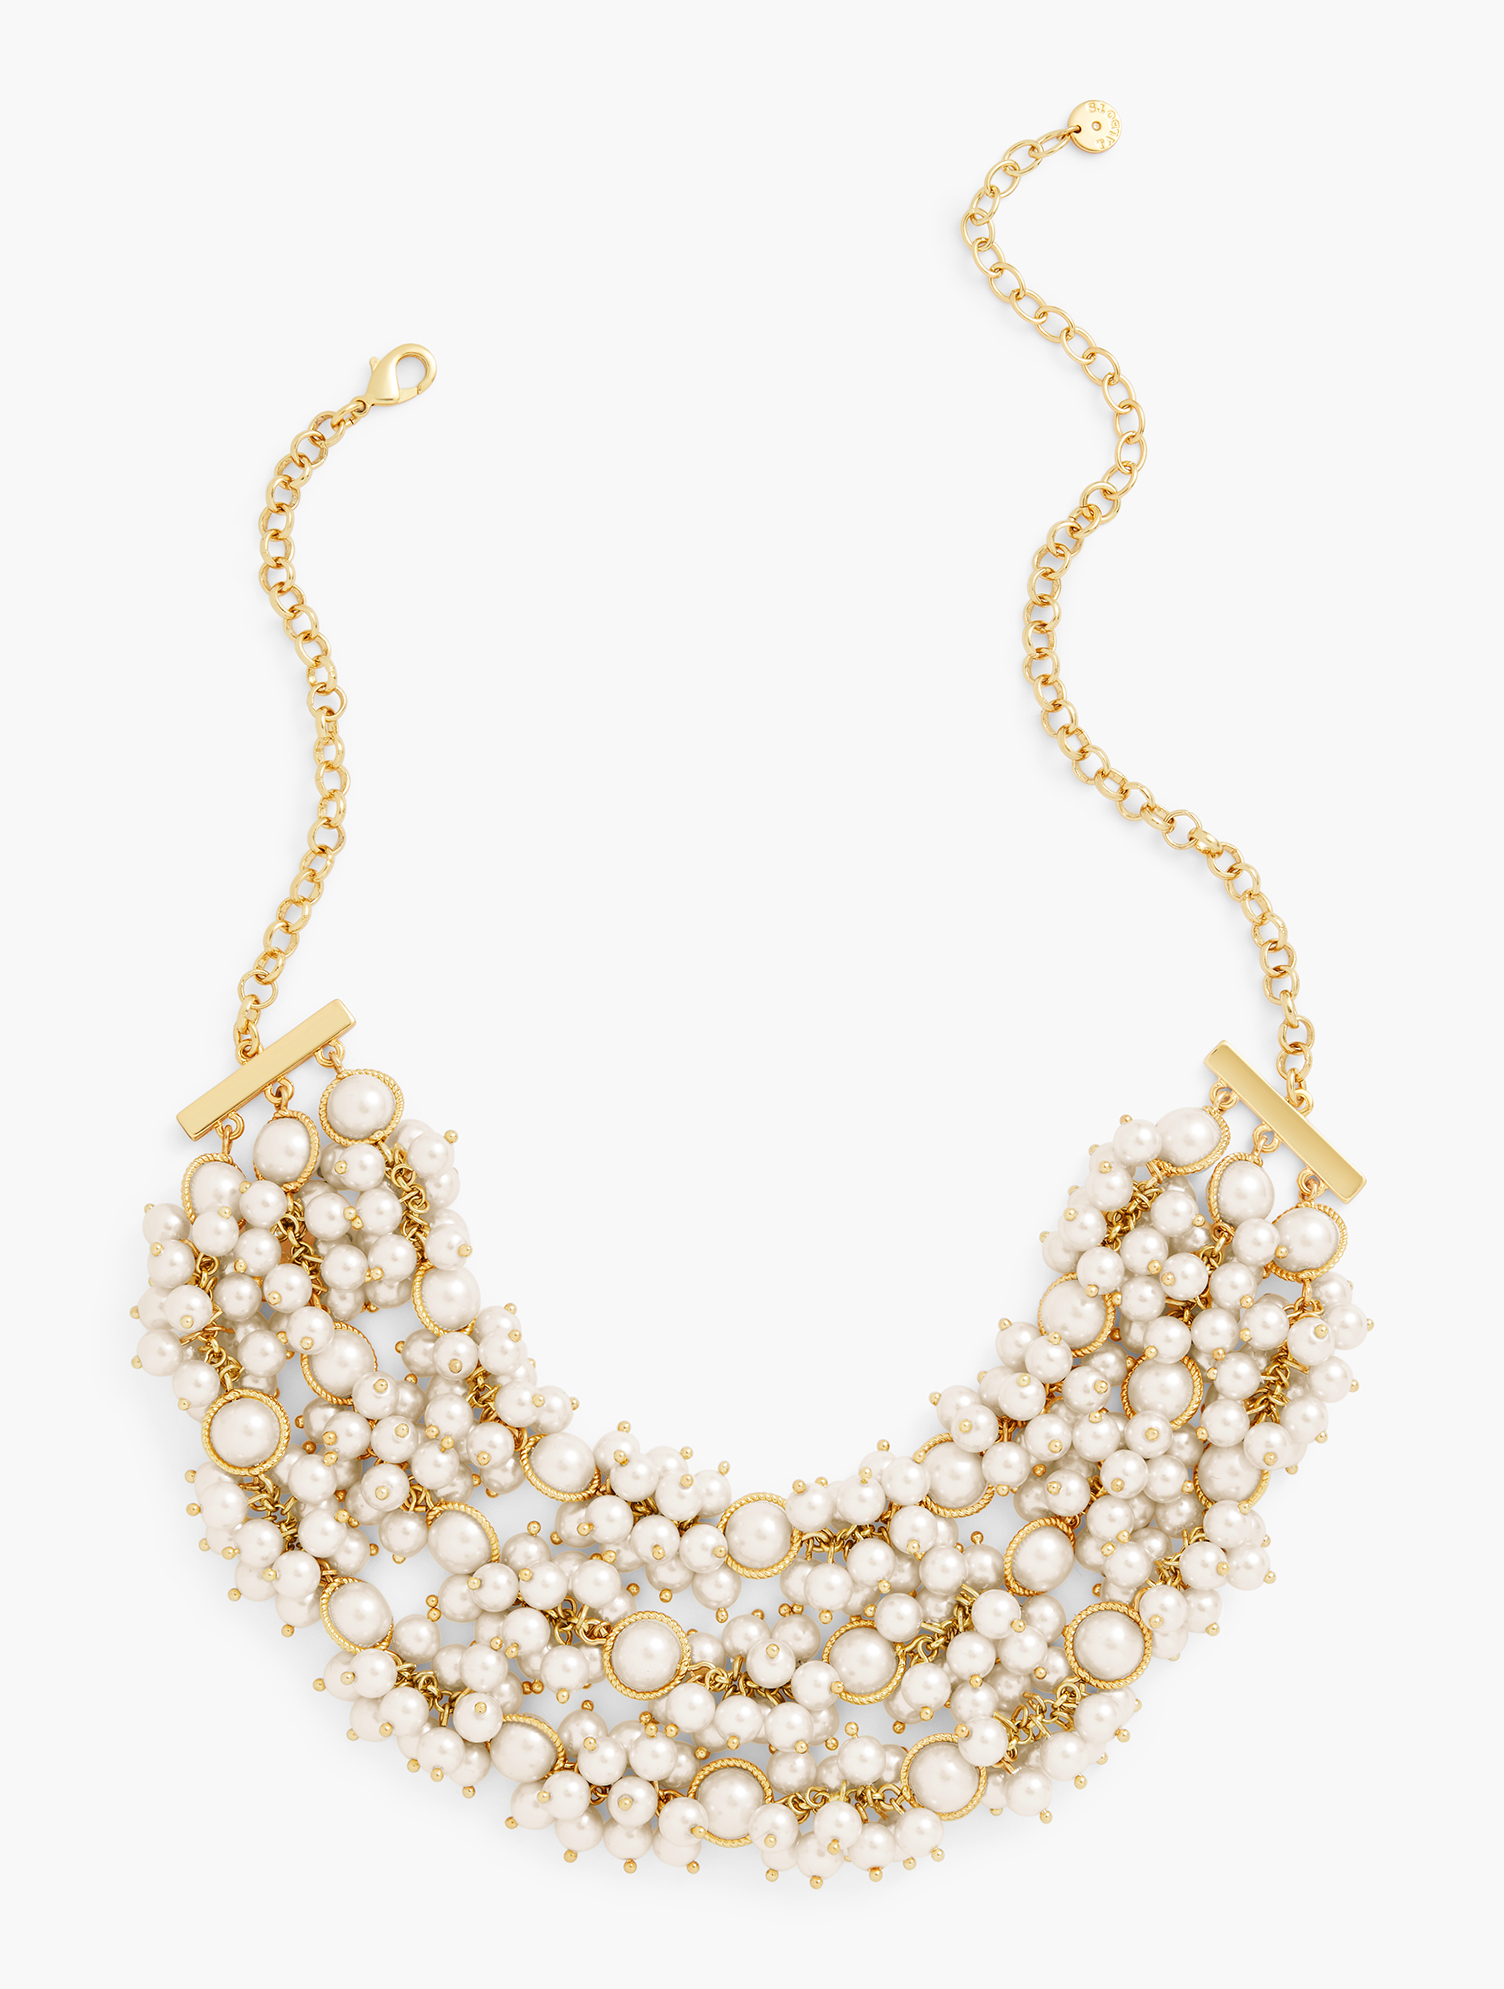 A true statement-maker. This pearl and glass bead necklace will elevate any outfit. Features Closure: Lobster Clasp Imported Fit: Dimensions: 18 inches + 3 inches Material: CP Chain 25%, glass pearl 50%, acrylic pearl 15%,zinc casting 5%, ball pin 4%, CZ 1% Pearl Strand Statement Necklace - Ivory - 001 Talbots